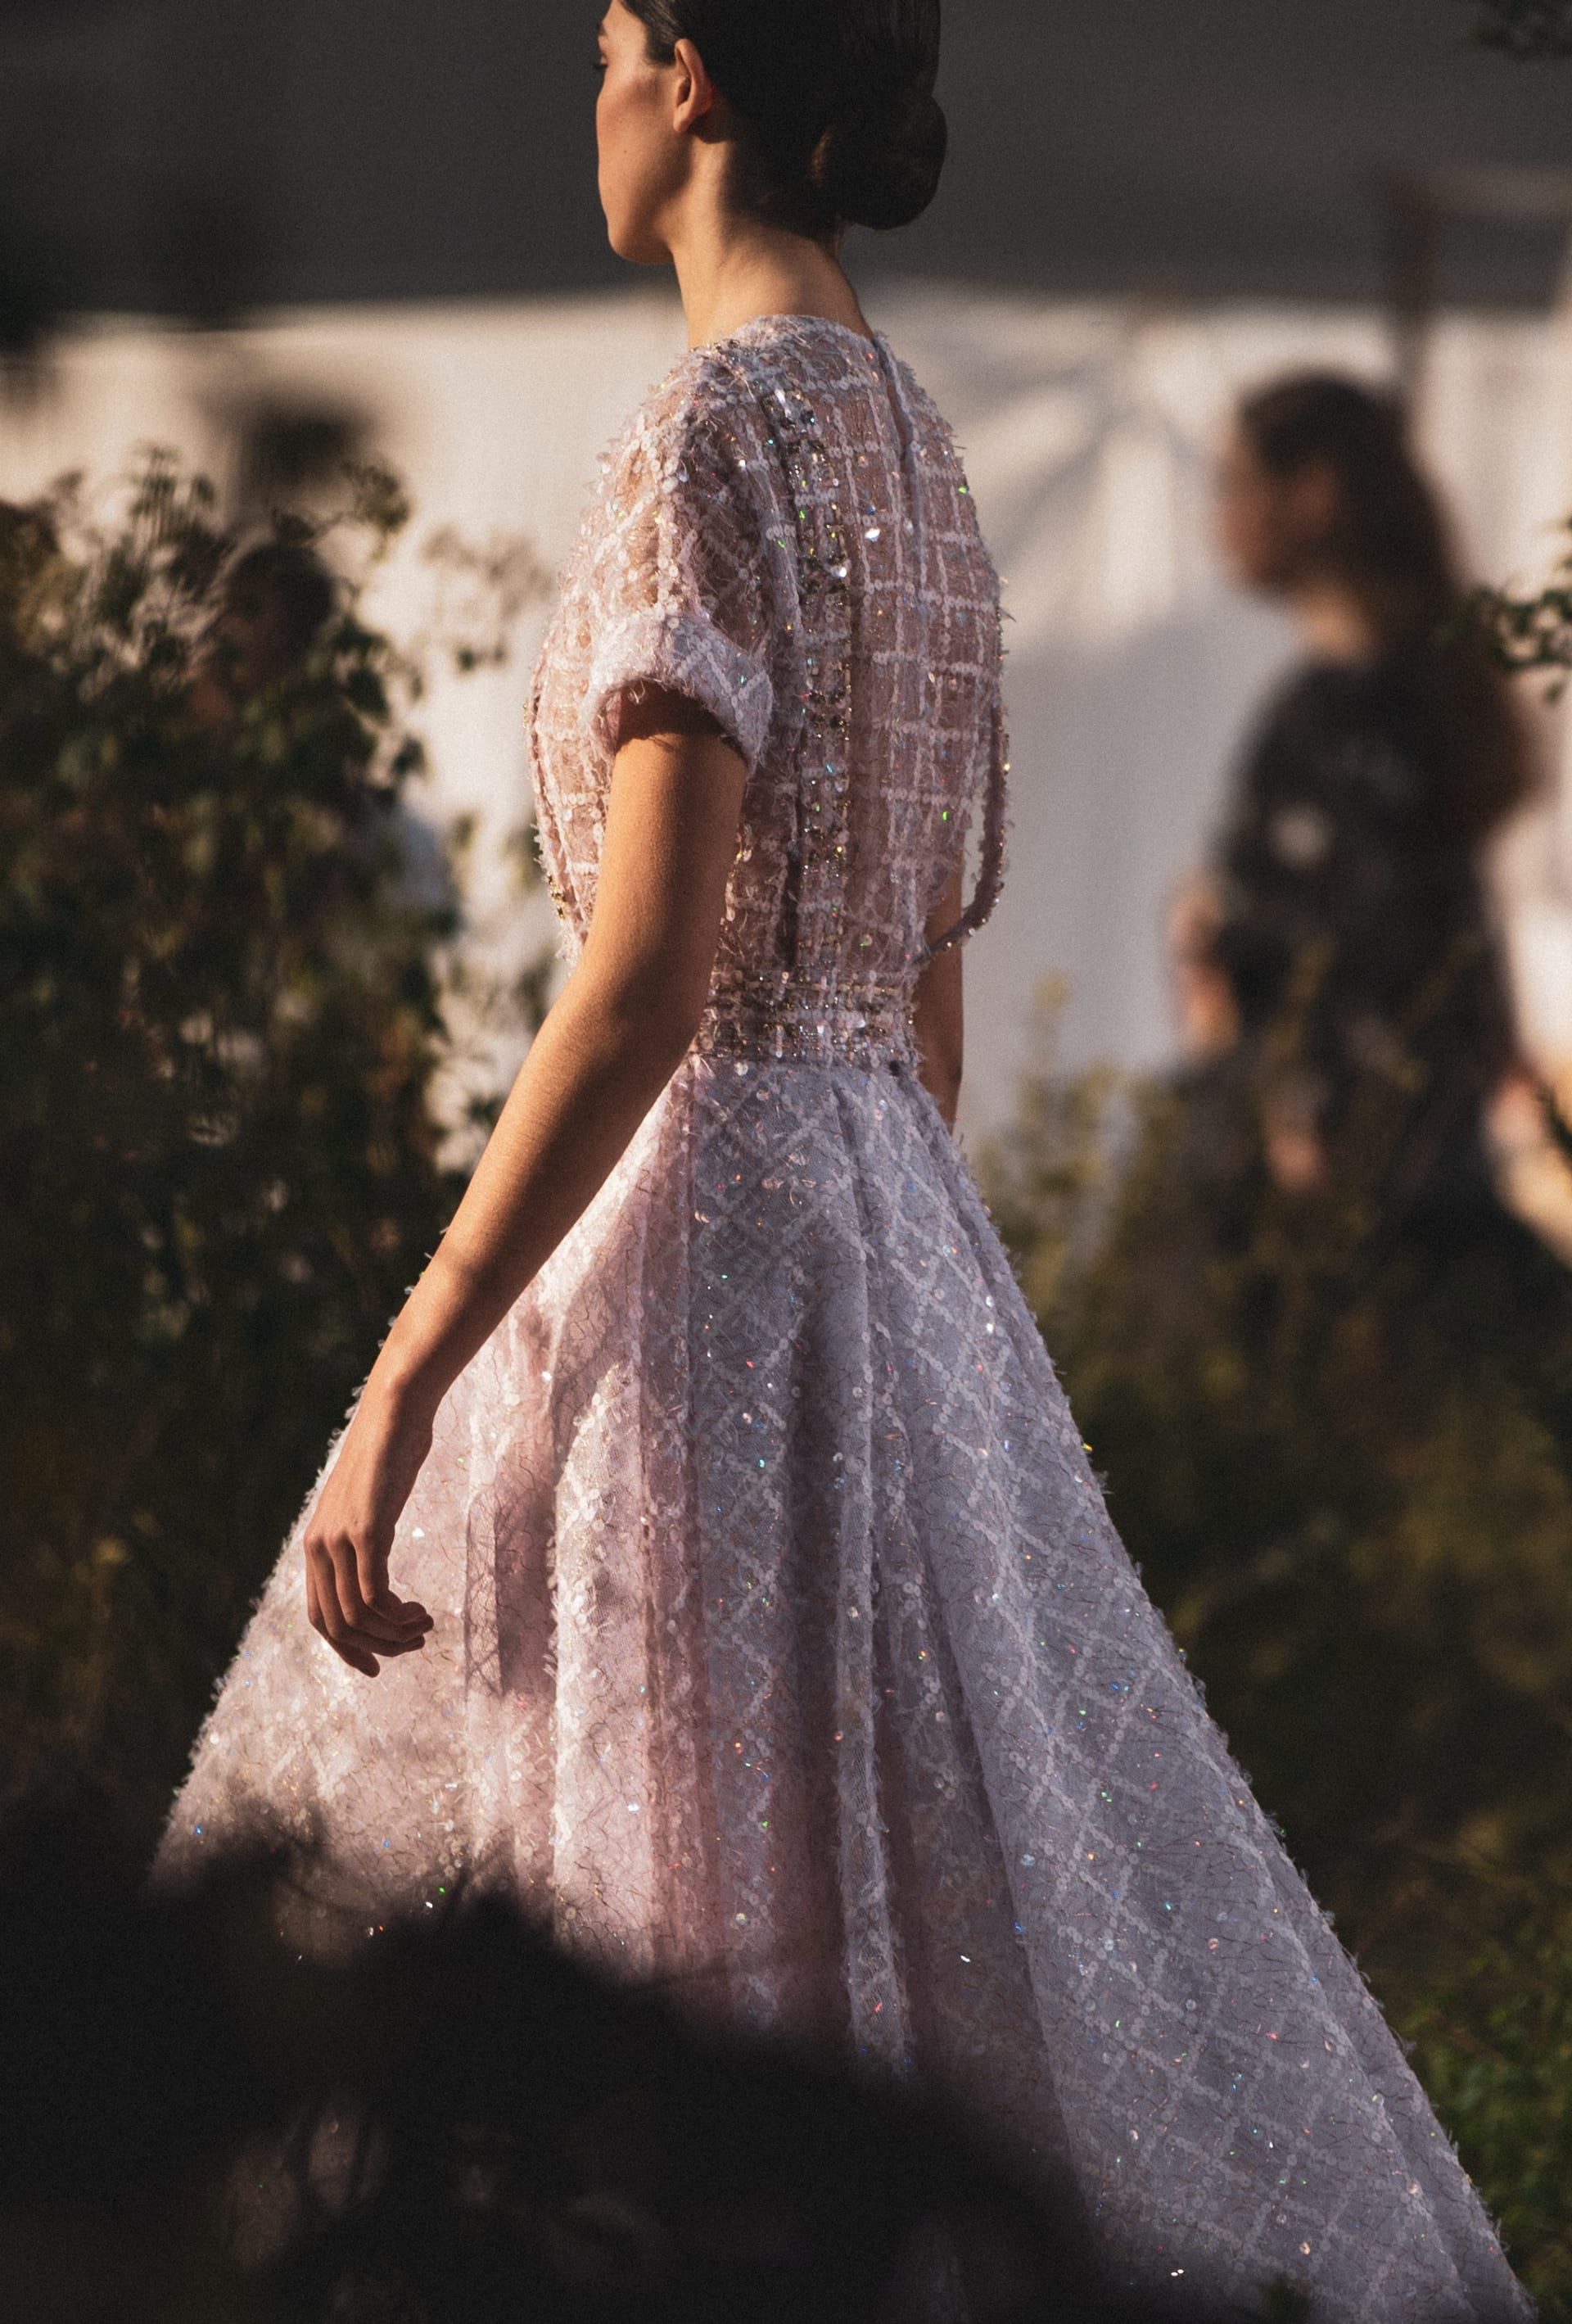 View 3 - Look 47 - Spring-Summer 2020 Haute Couture - see full sized version